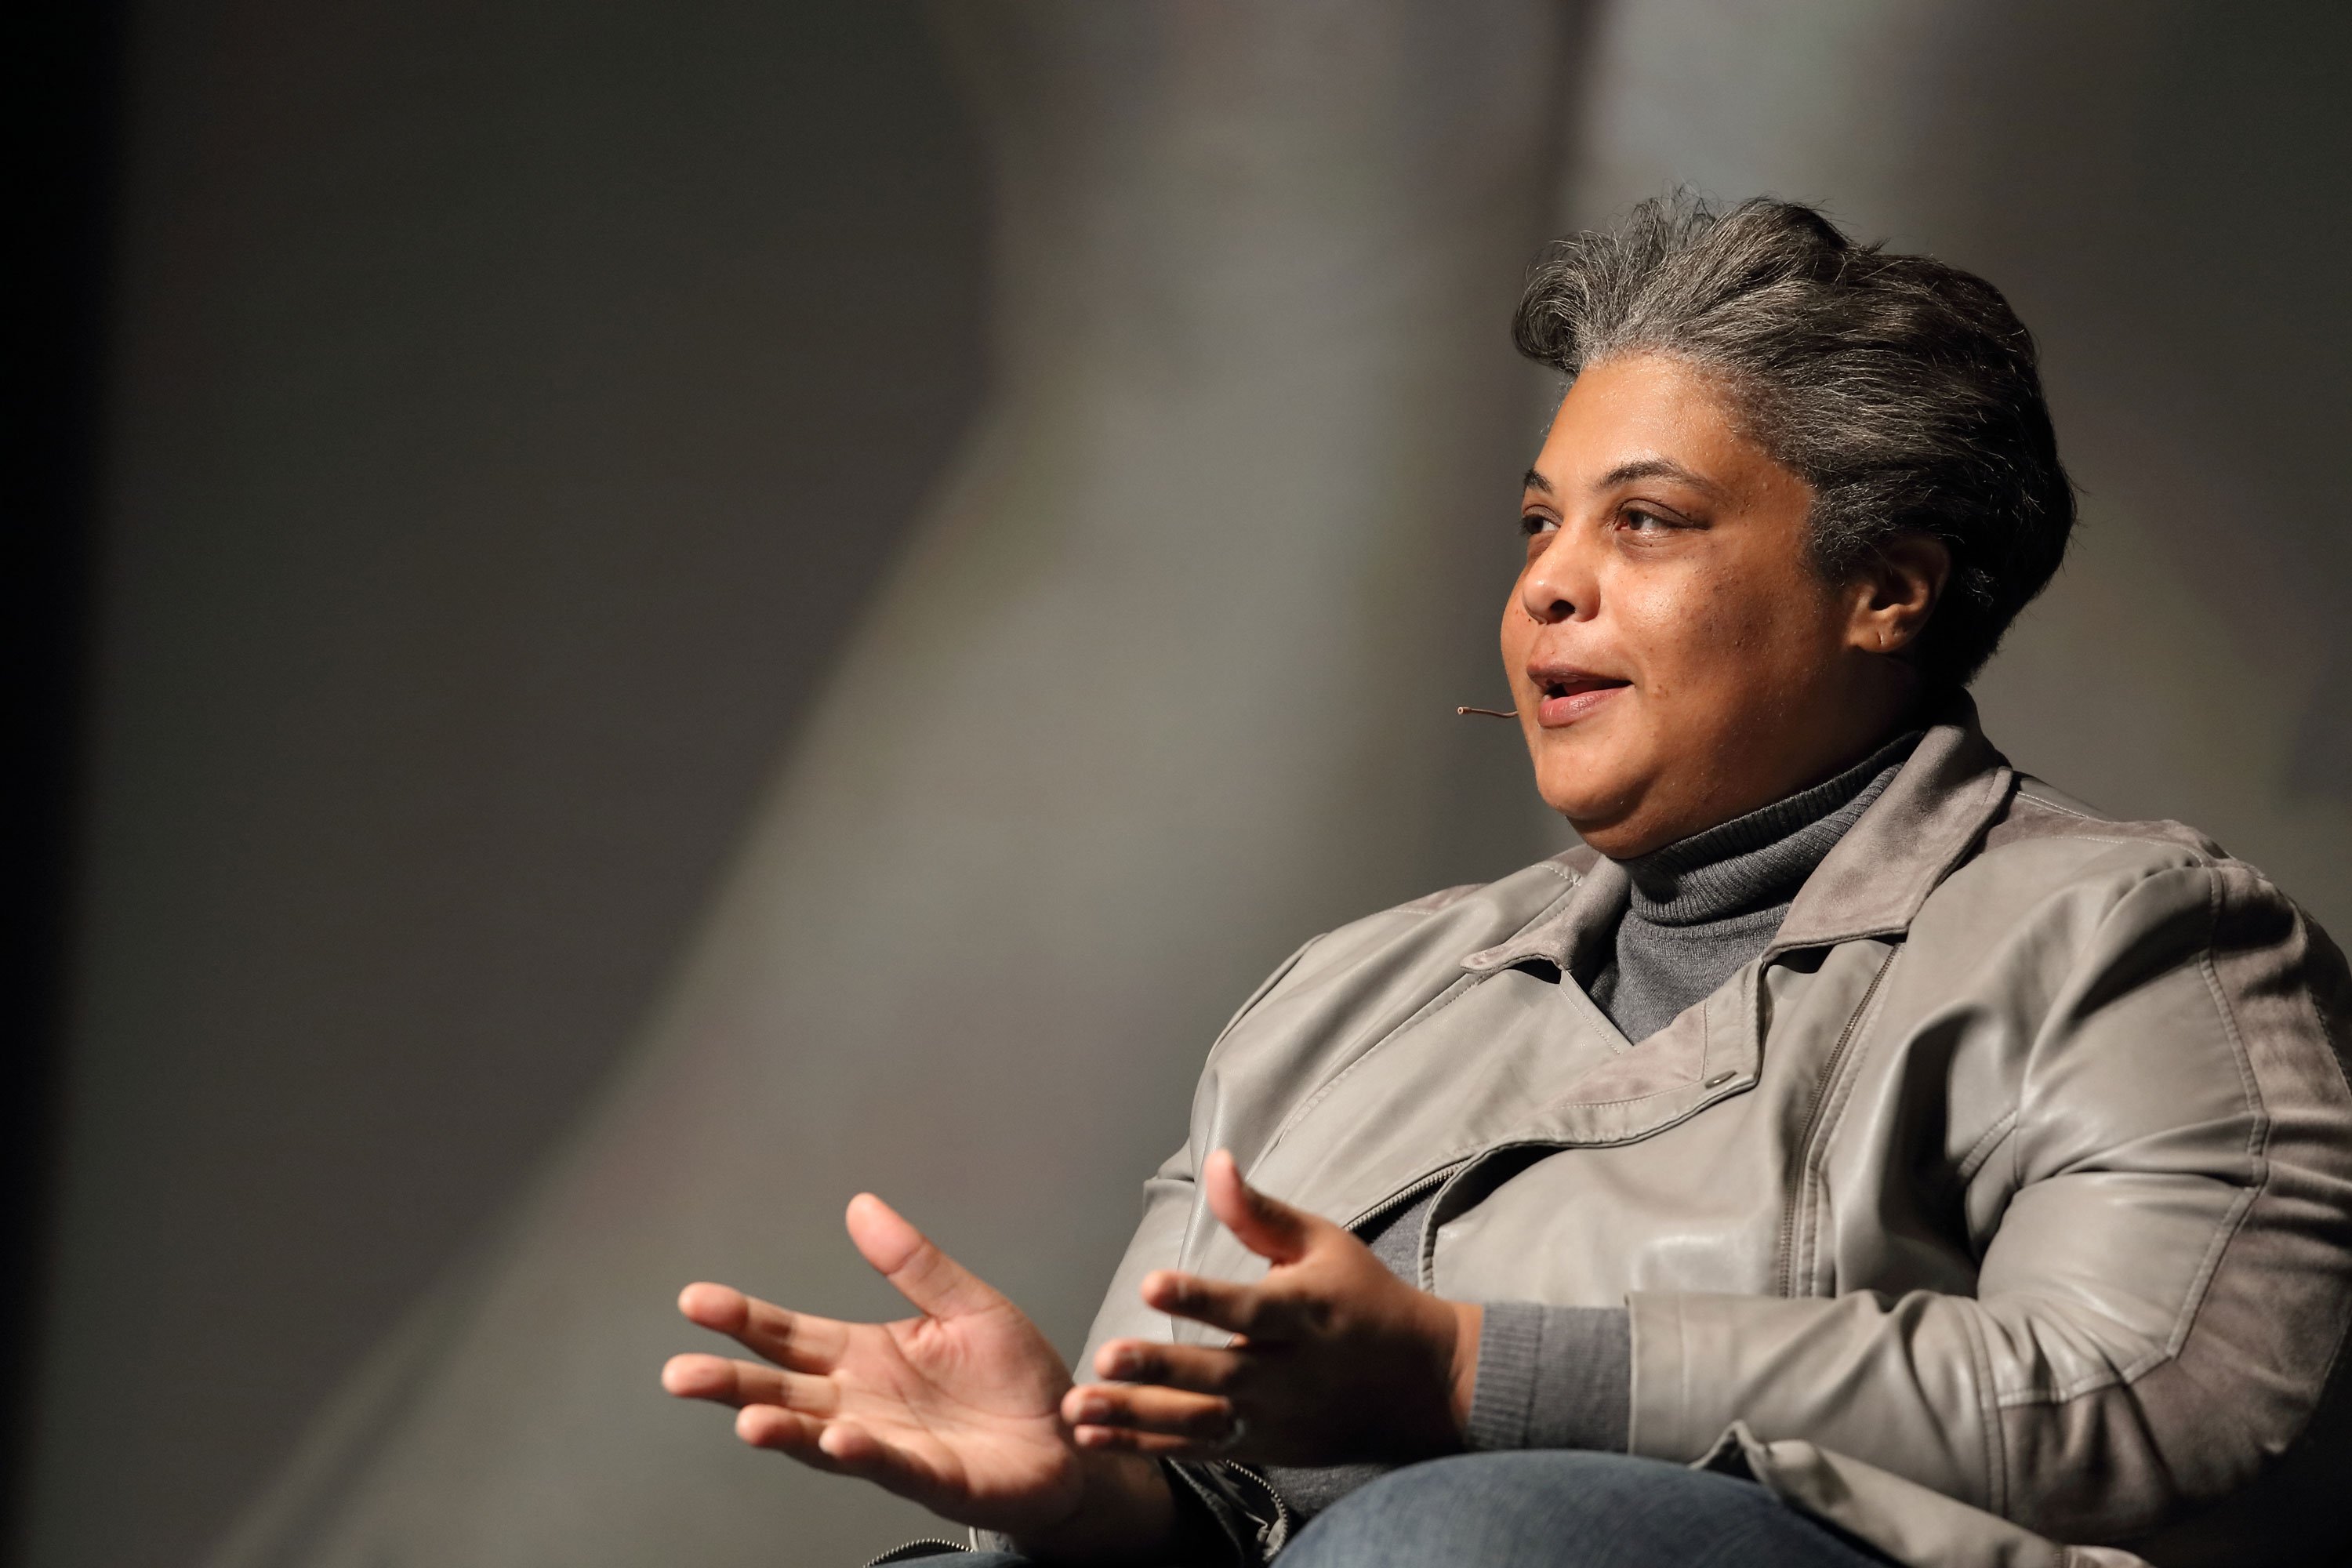 Author and cultural critic Roxane Gay writes essays, novels, short stories and comics.